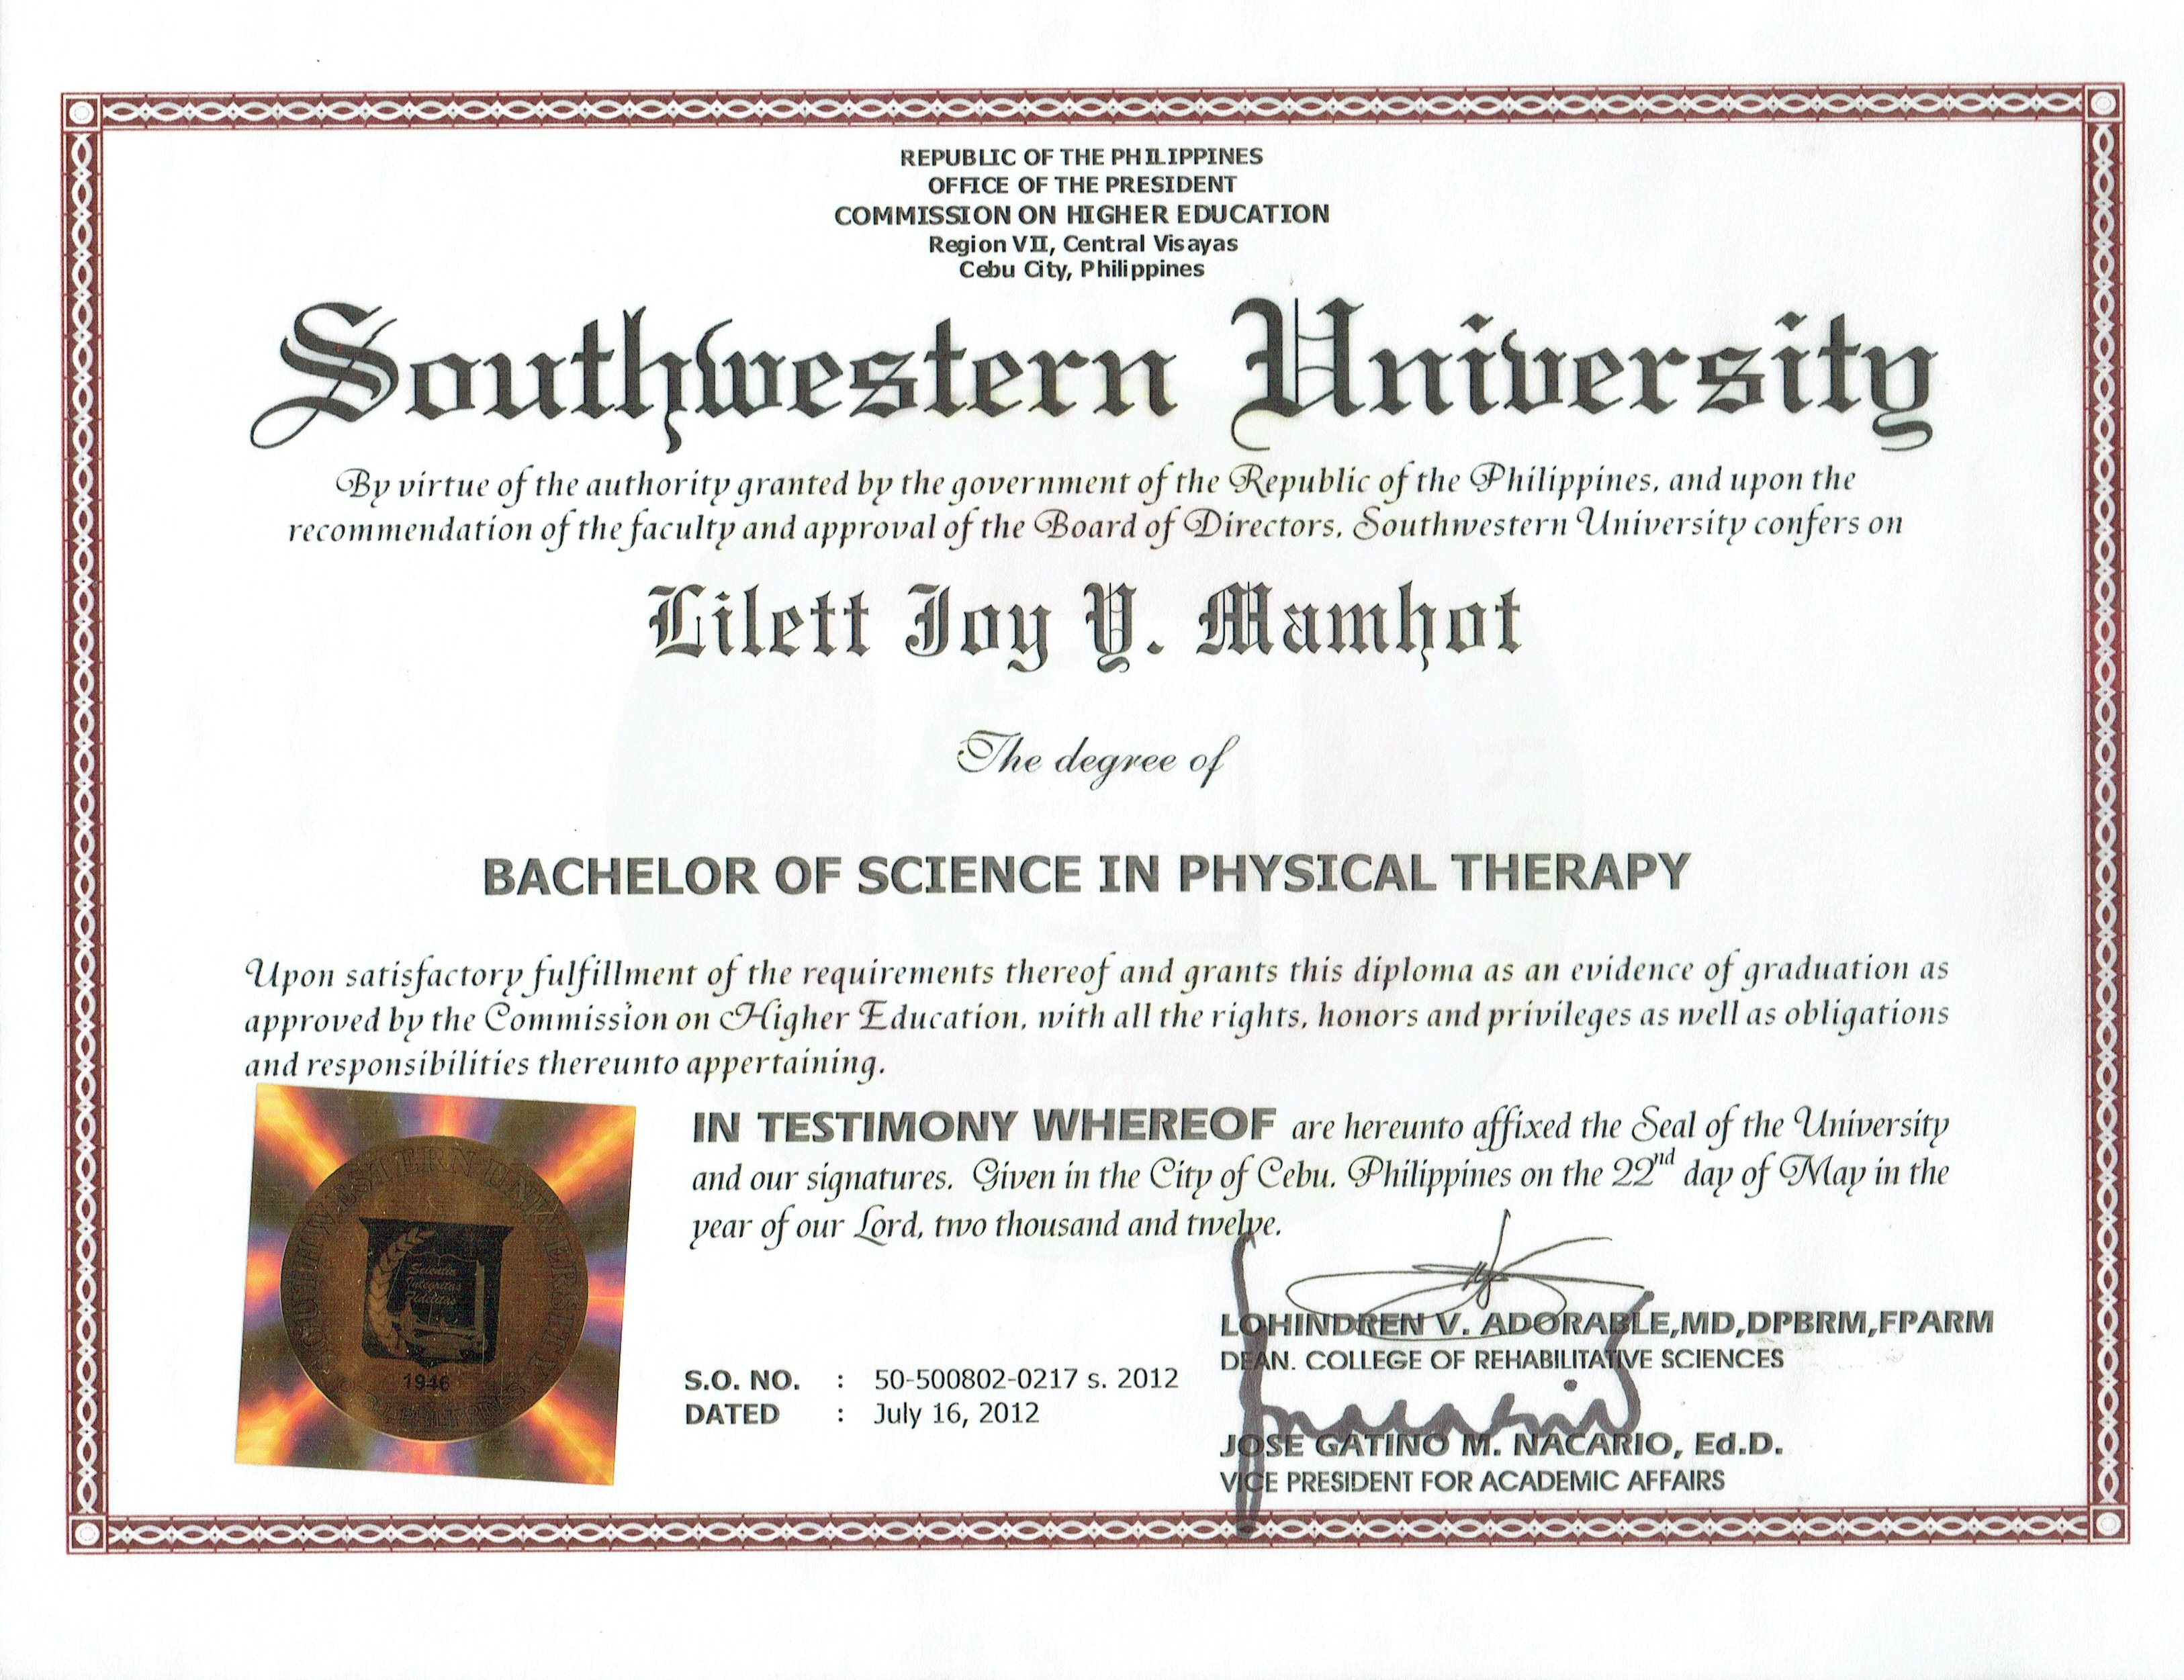 Bachelor of physical therapy - Physical Therapy Courses In The Philippines Is A Five 5 Years Course Which Deal With Human Movement Or Kinesiology Study Human Anatomy And Physiology